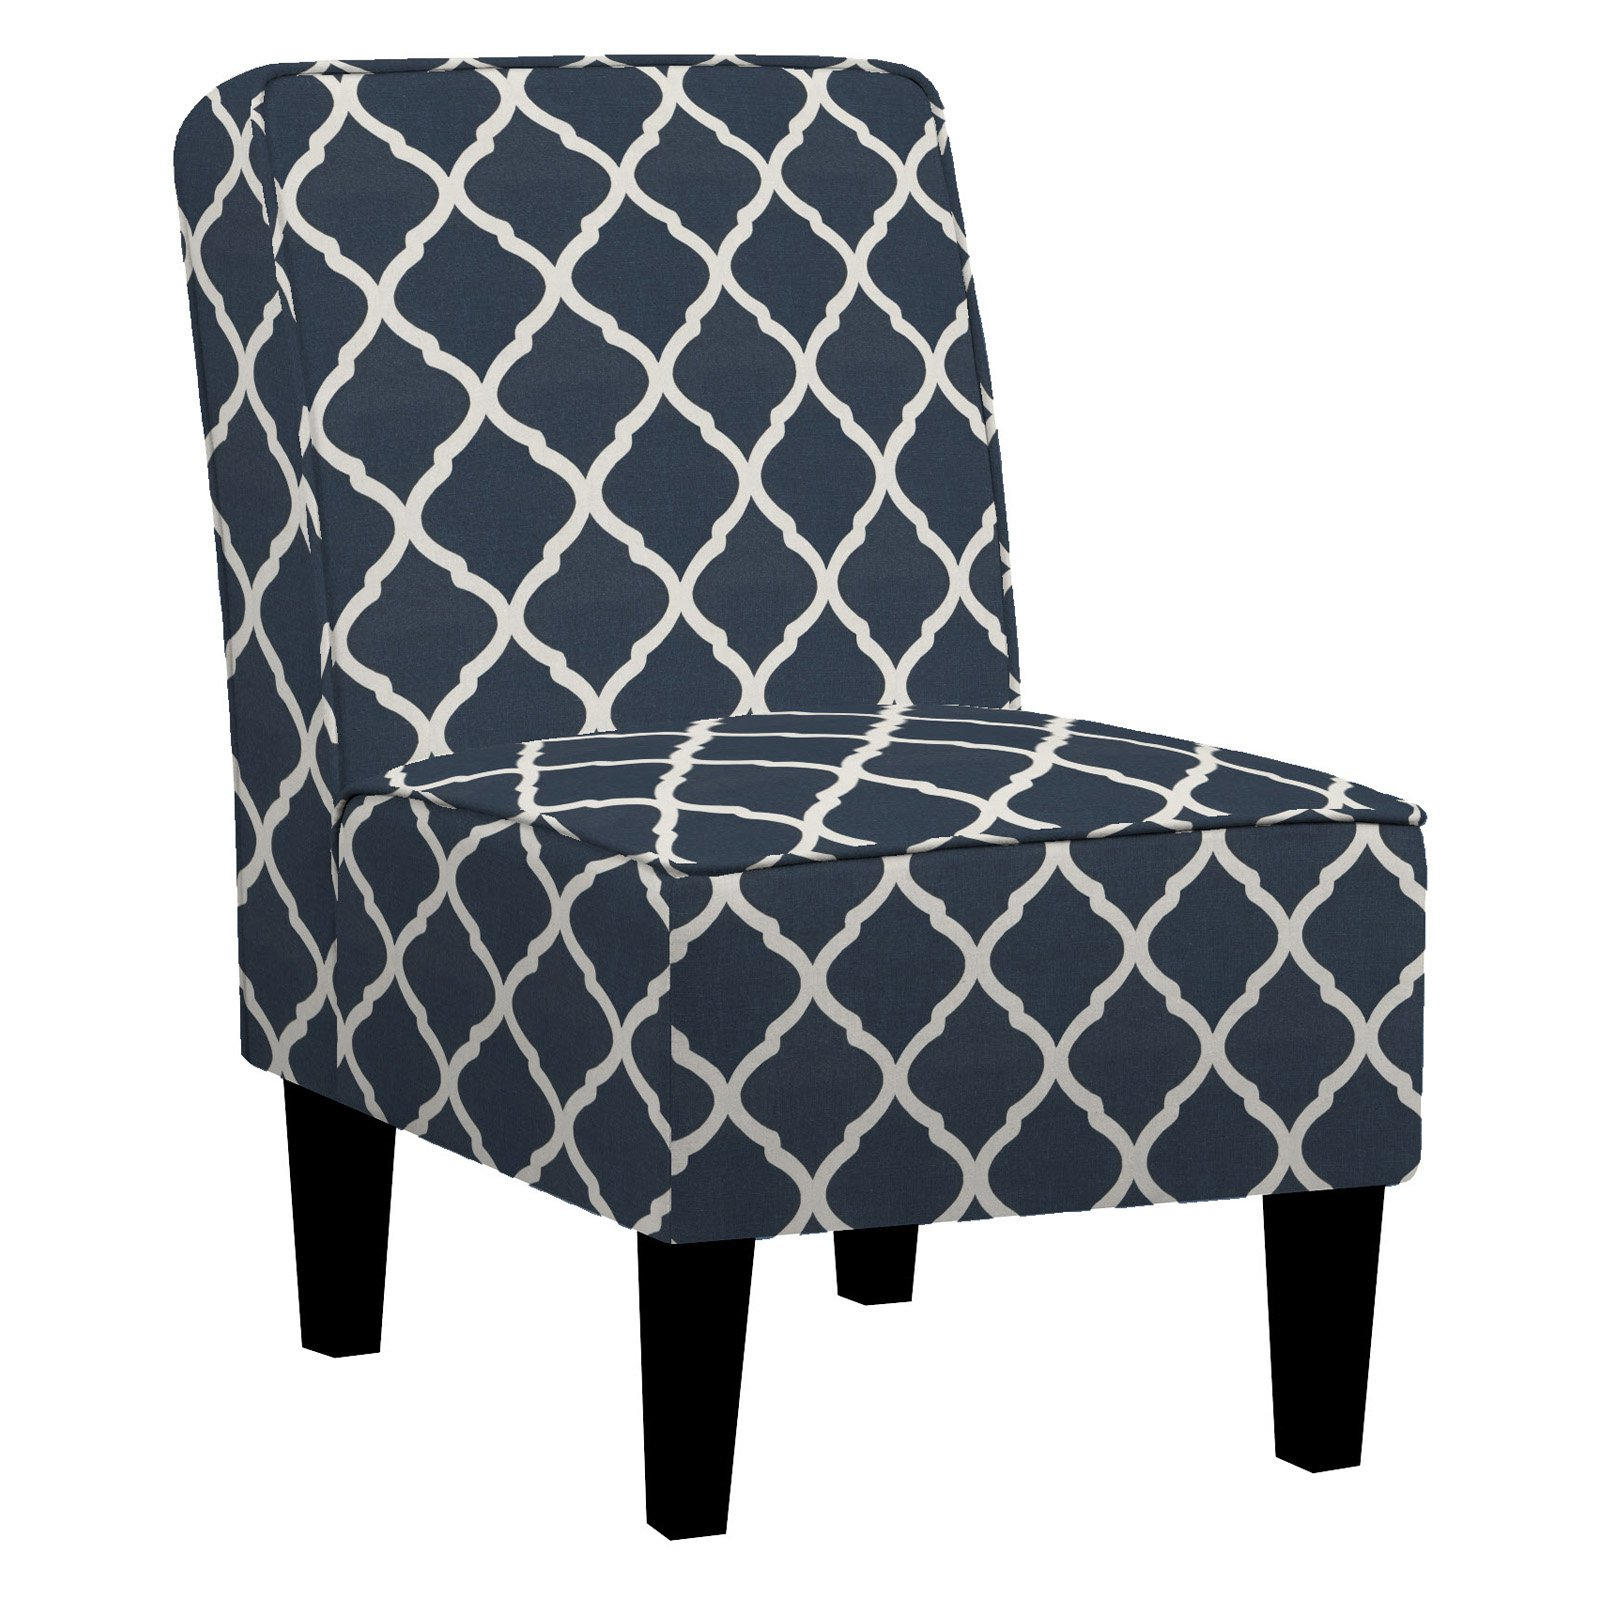 accent chairs under 100 2 personalized childrens chair walmart